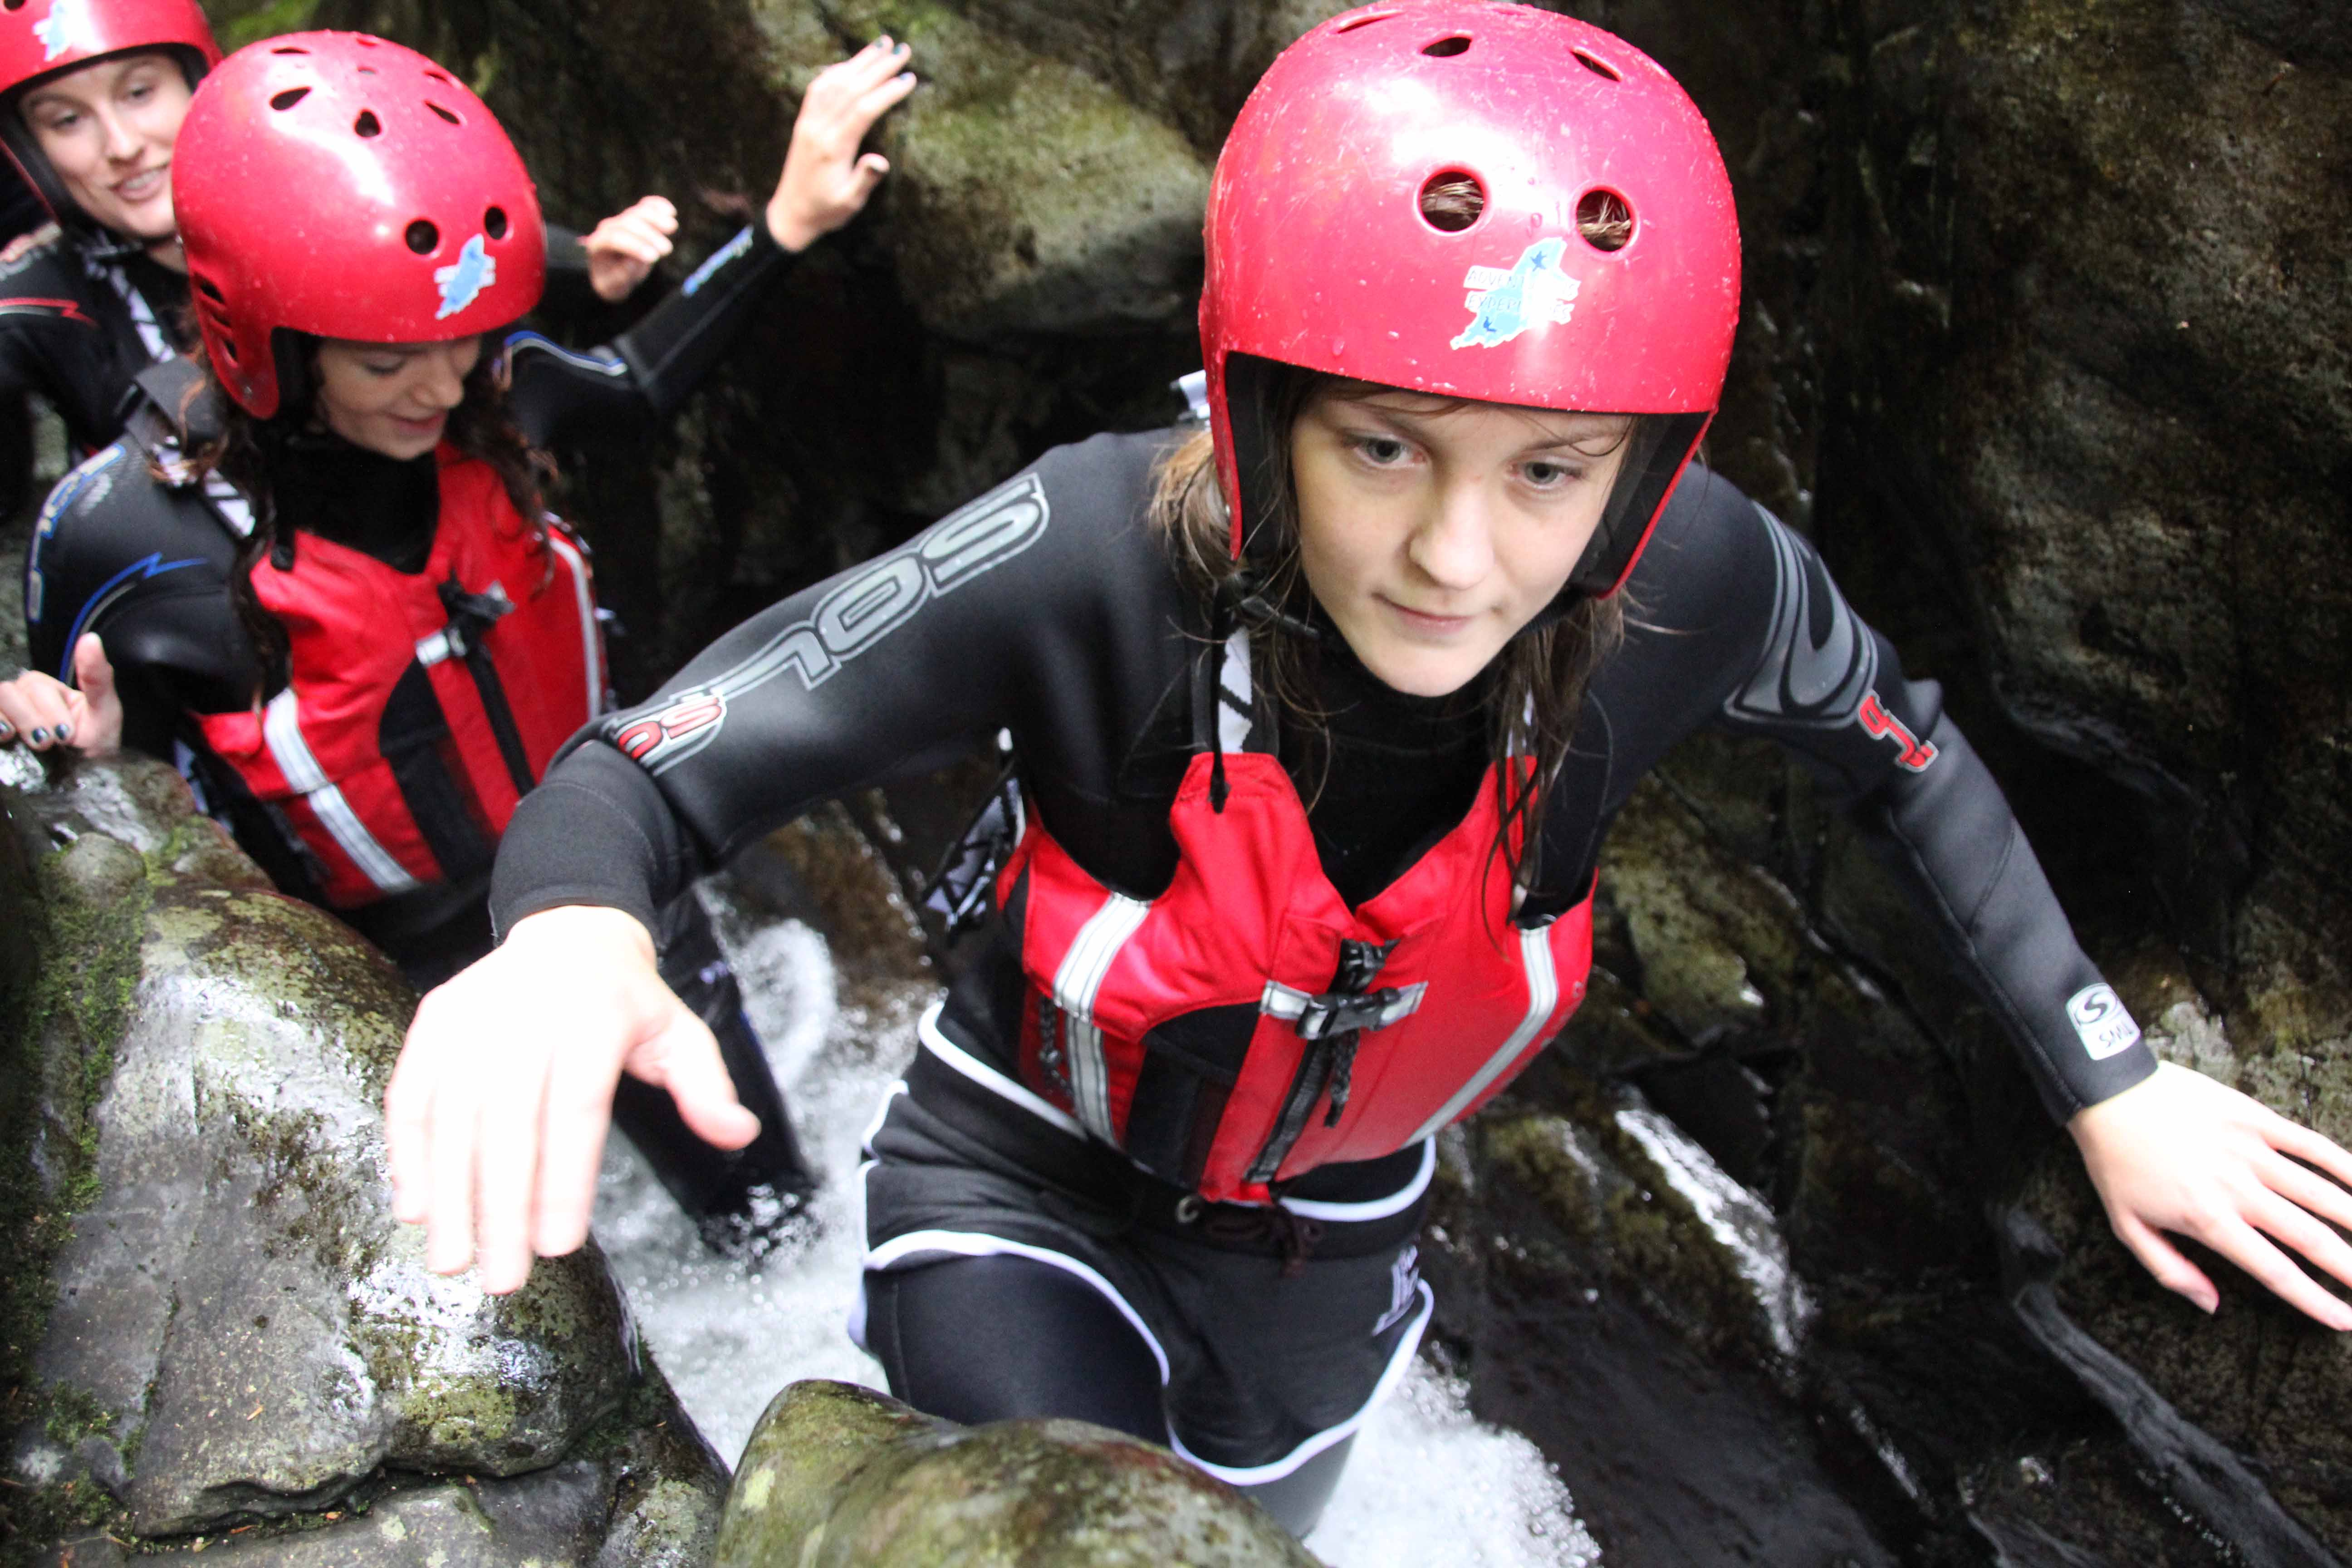 Unforgettable Gorge Scrambling experiences in the Isle of Man